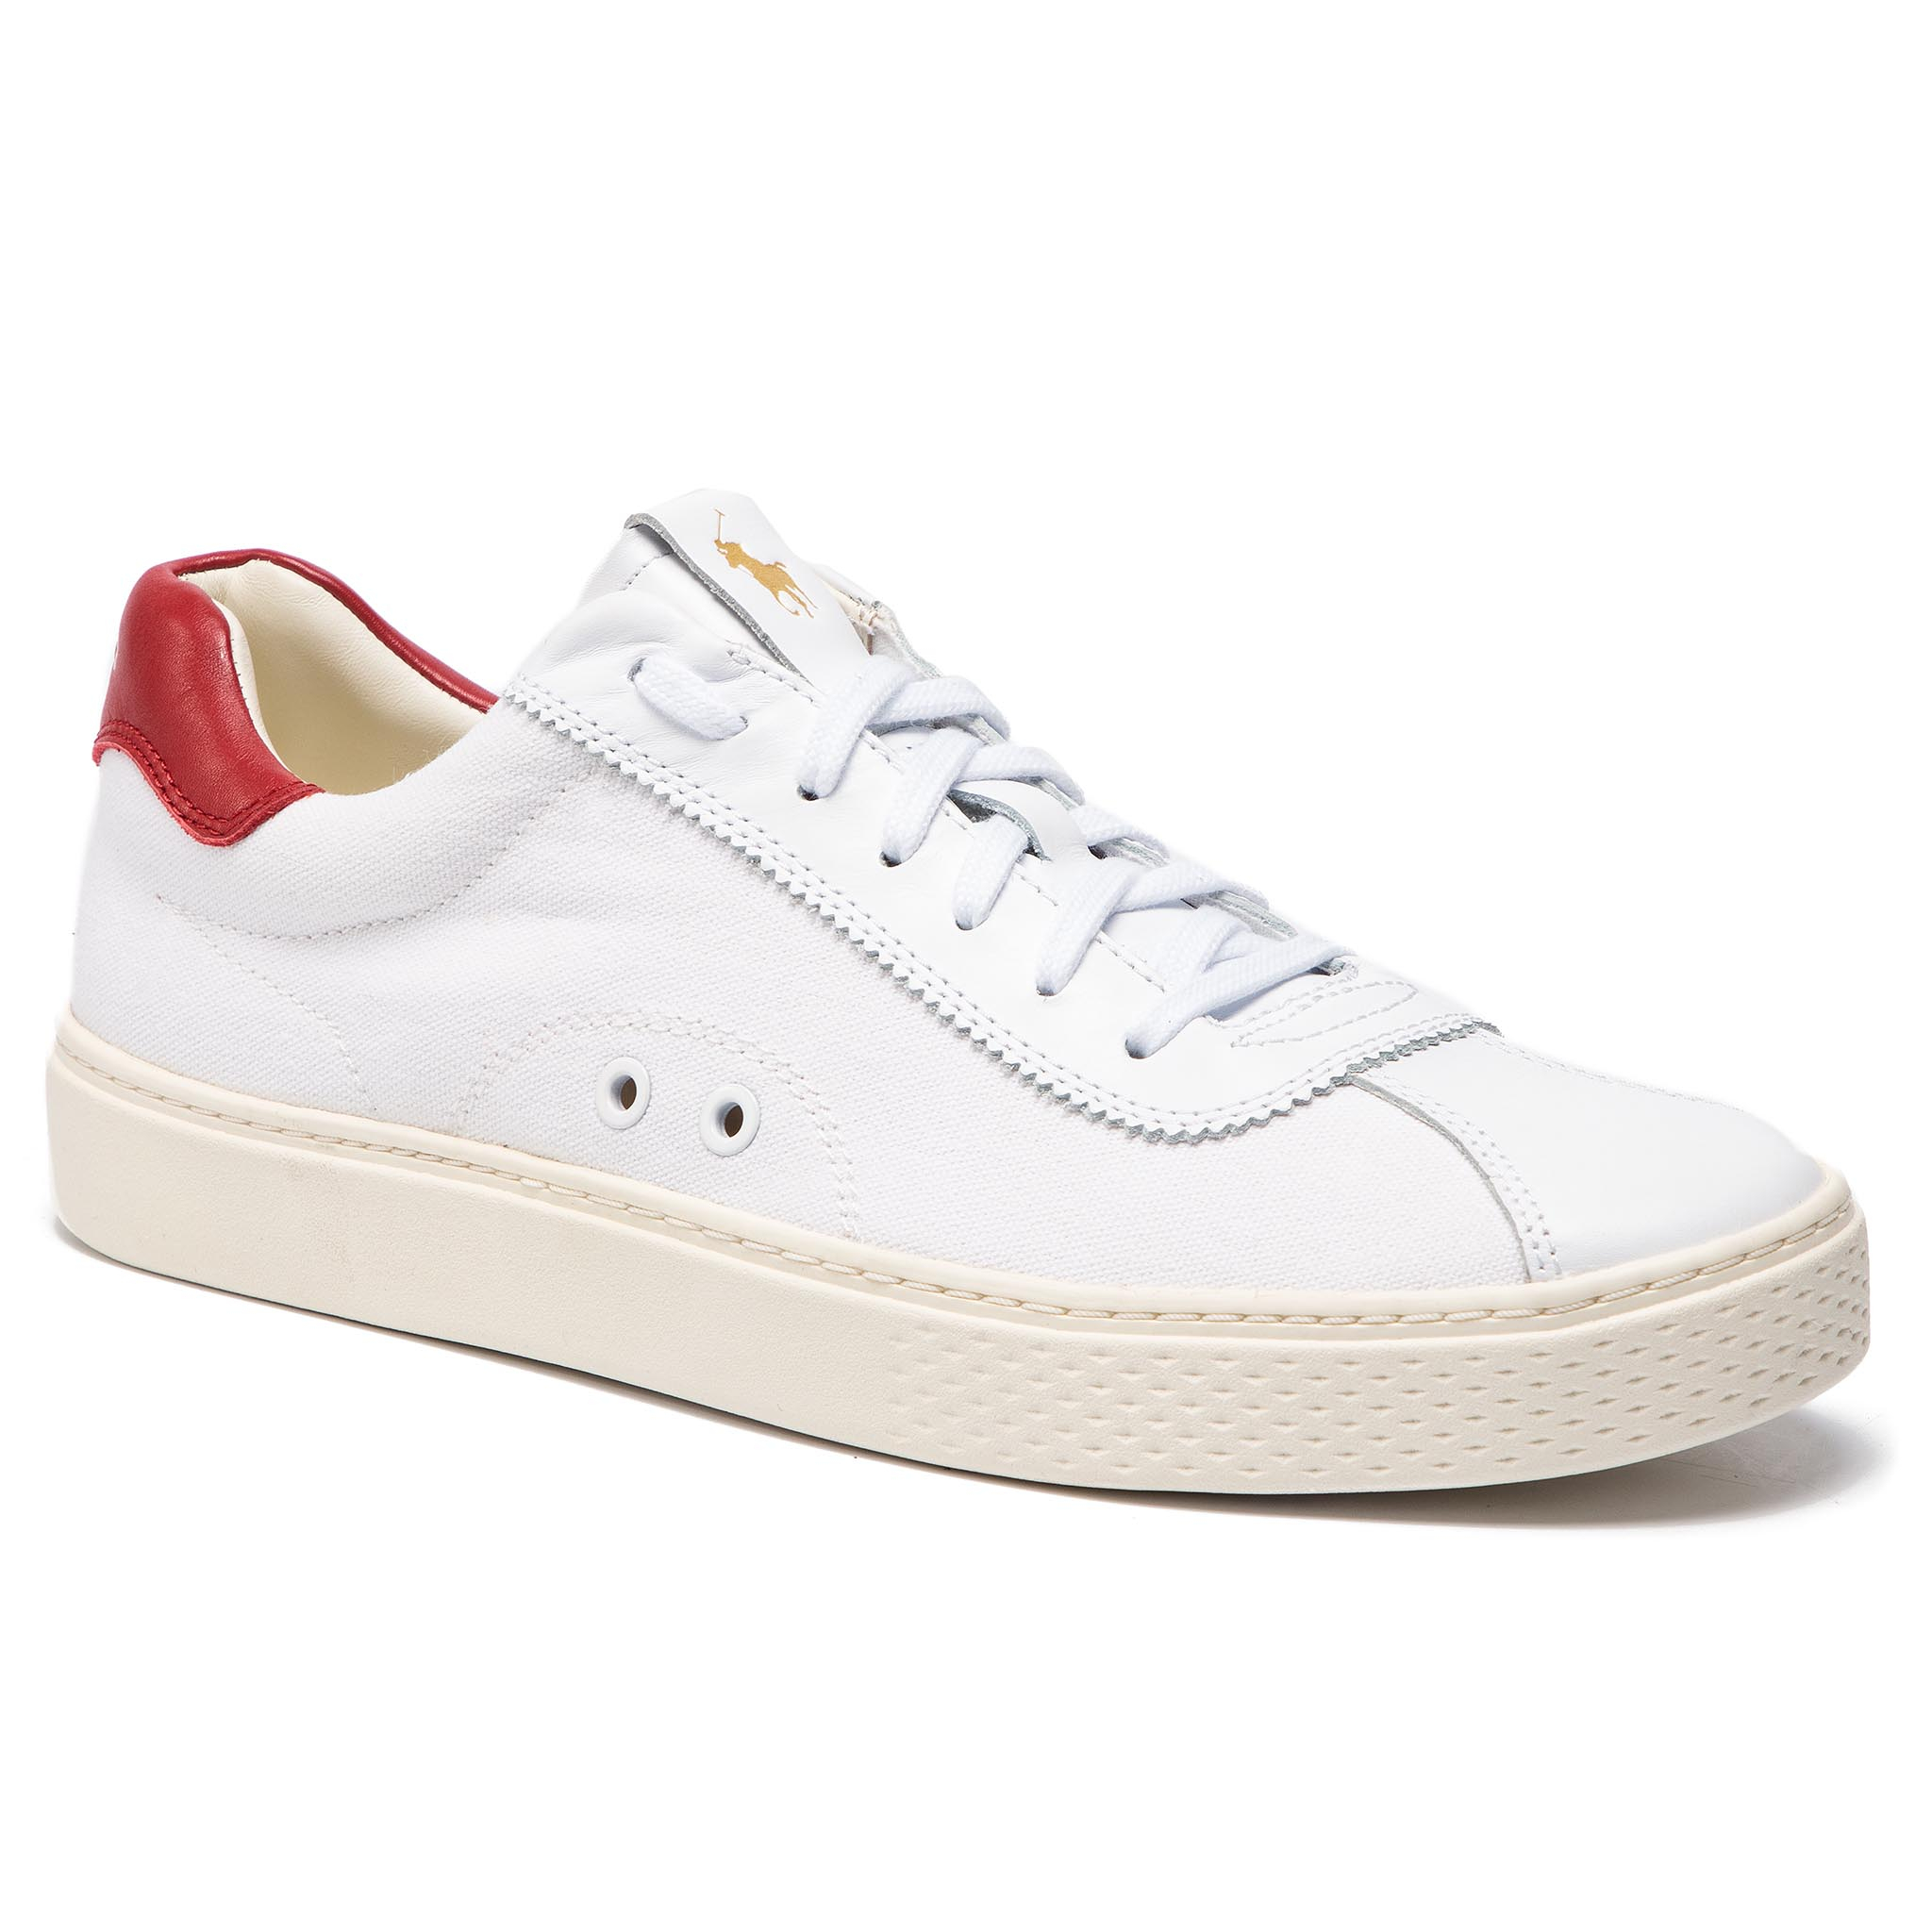 Sneakers POLO RALPH LAUREN - Court100 Lux 809735368004 White